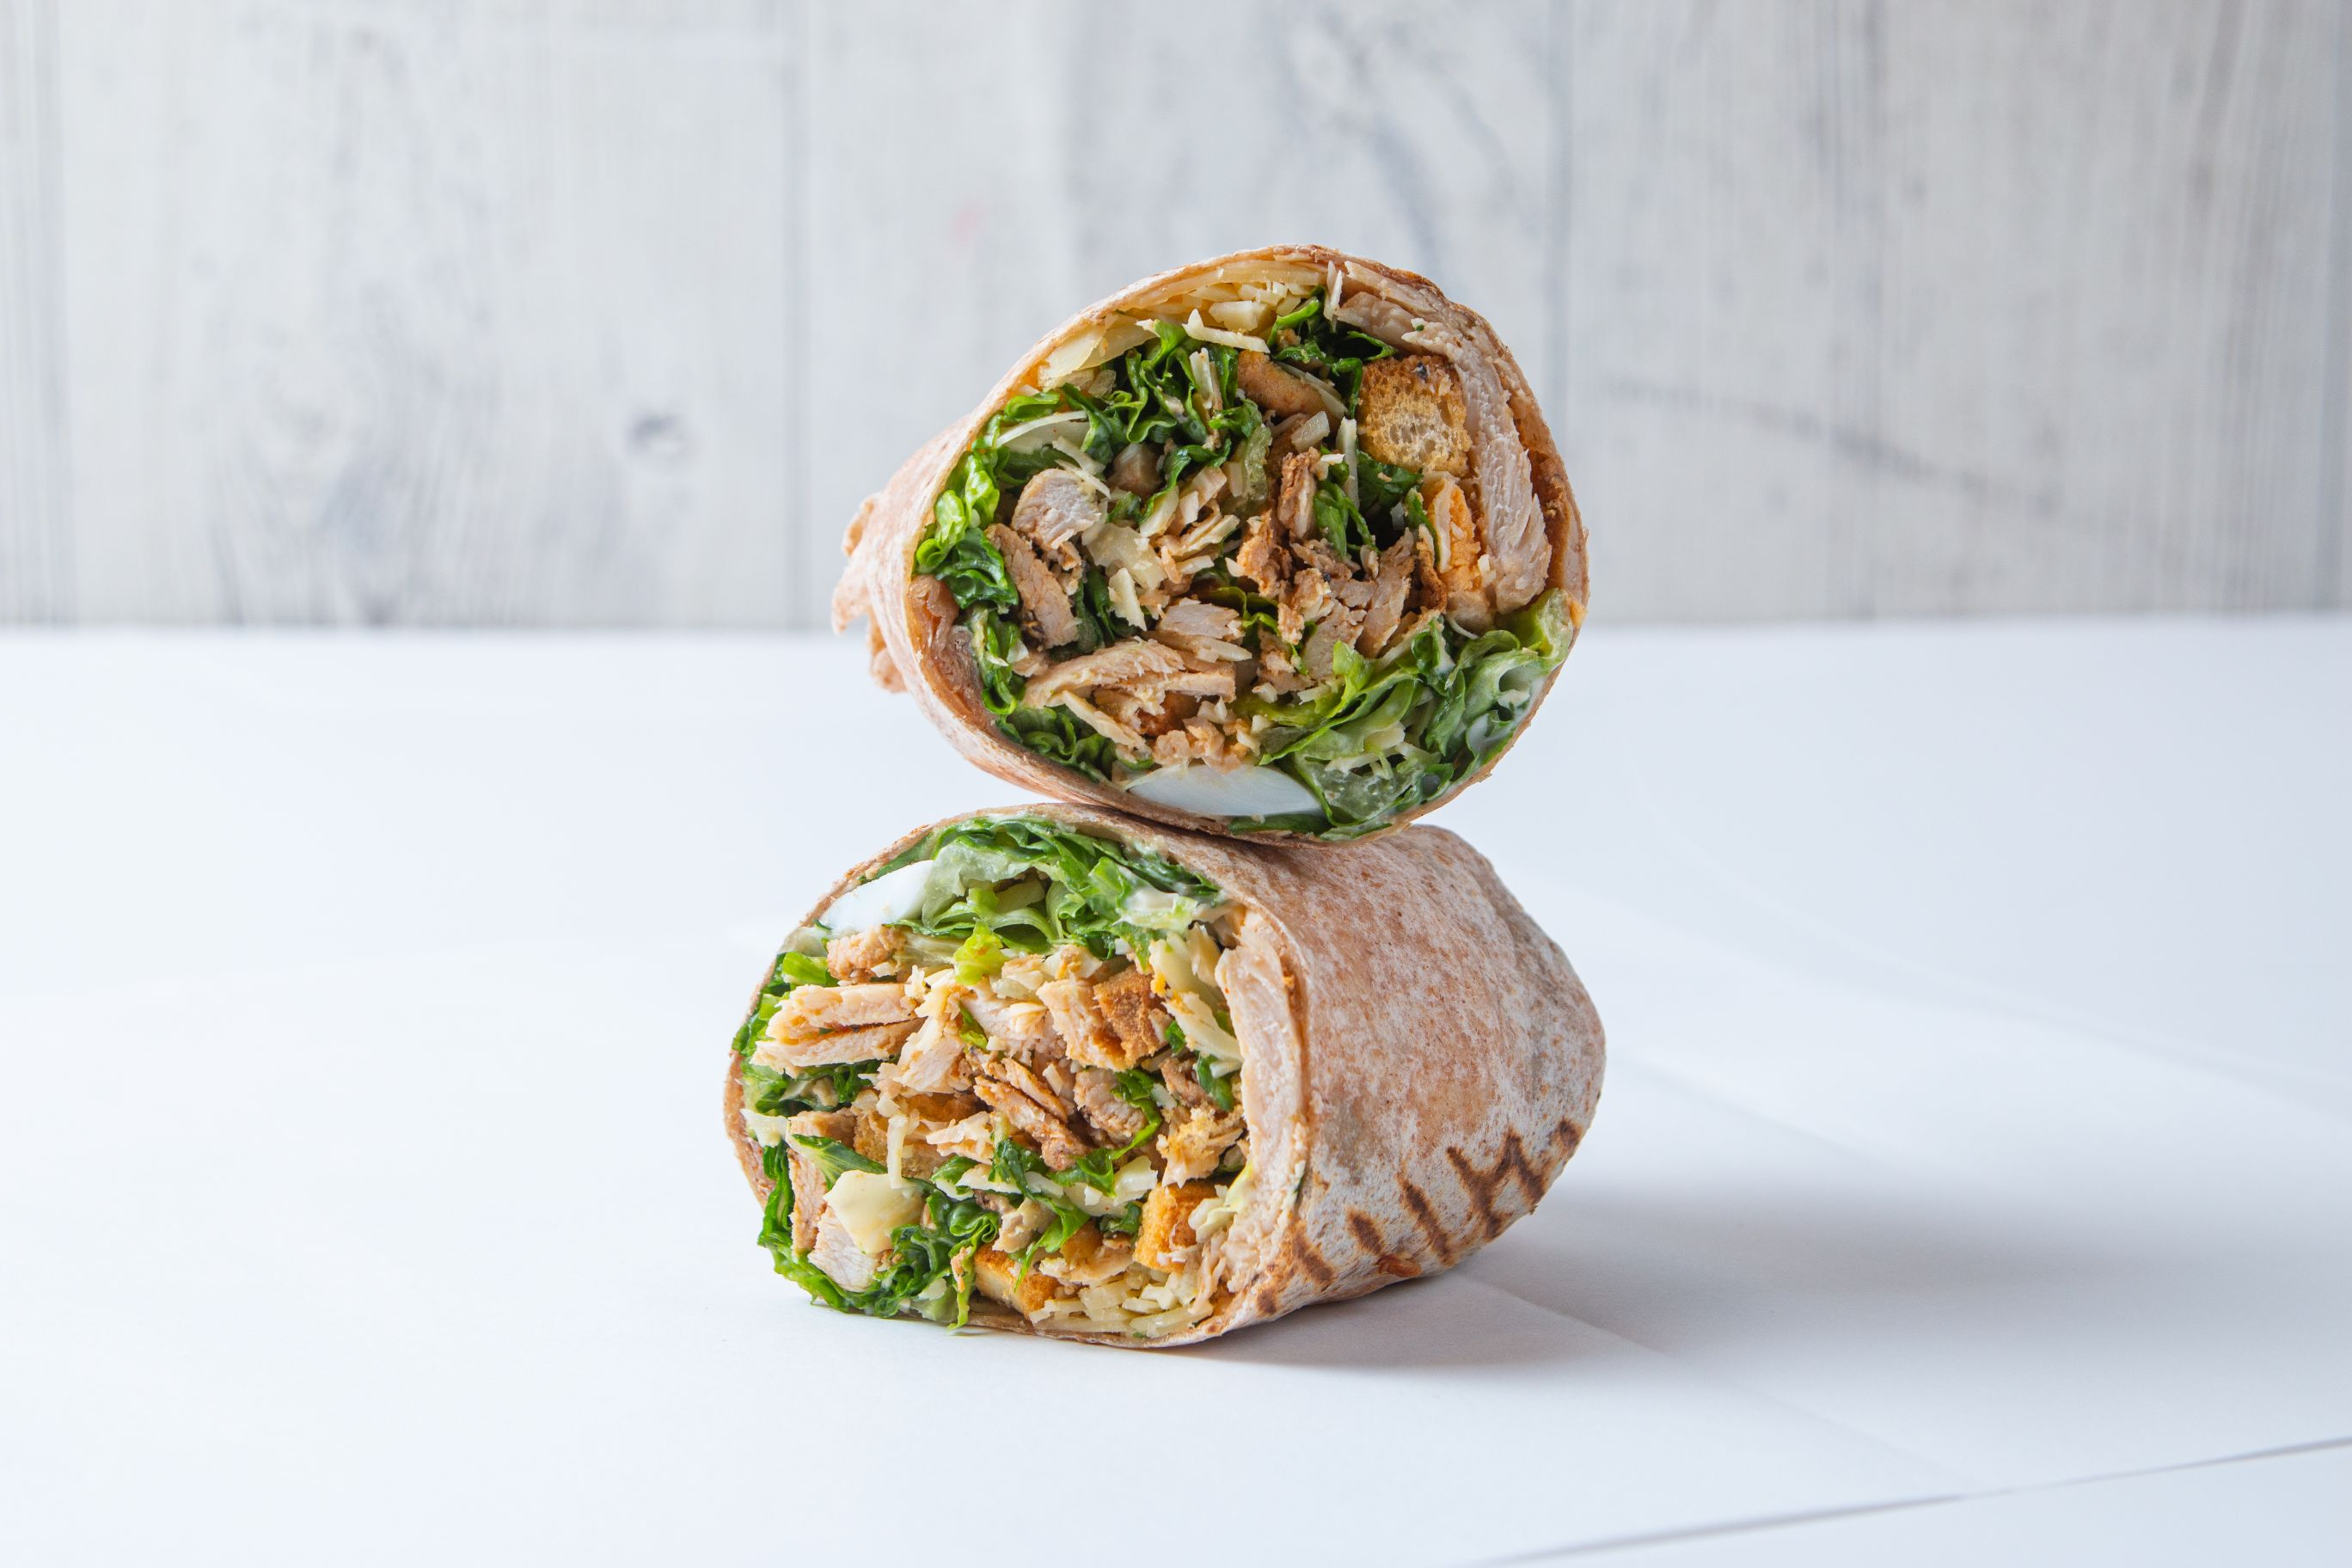 Simply Wrapps (HarbourFront Centre) - Dine, Shop, Earn